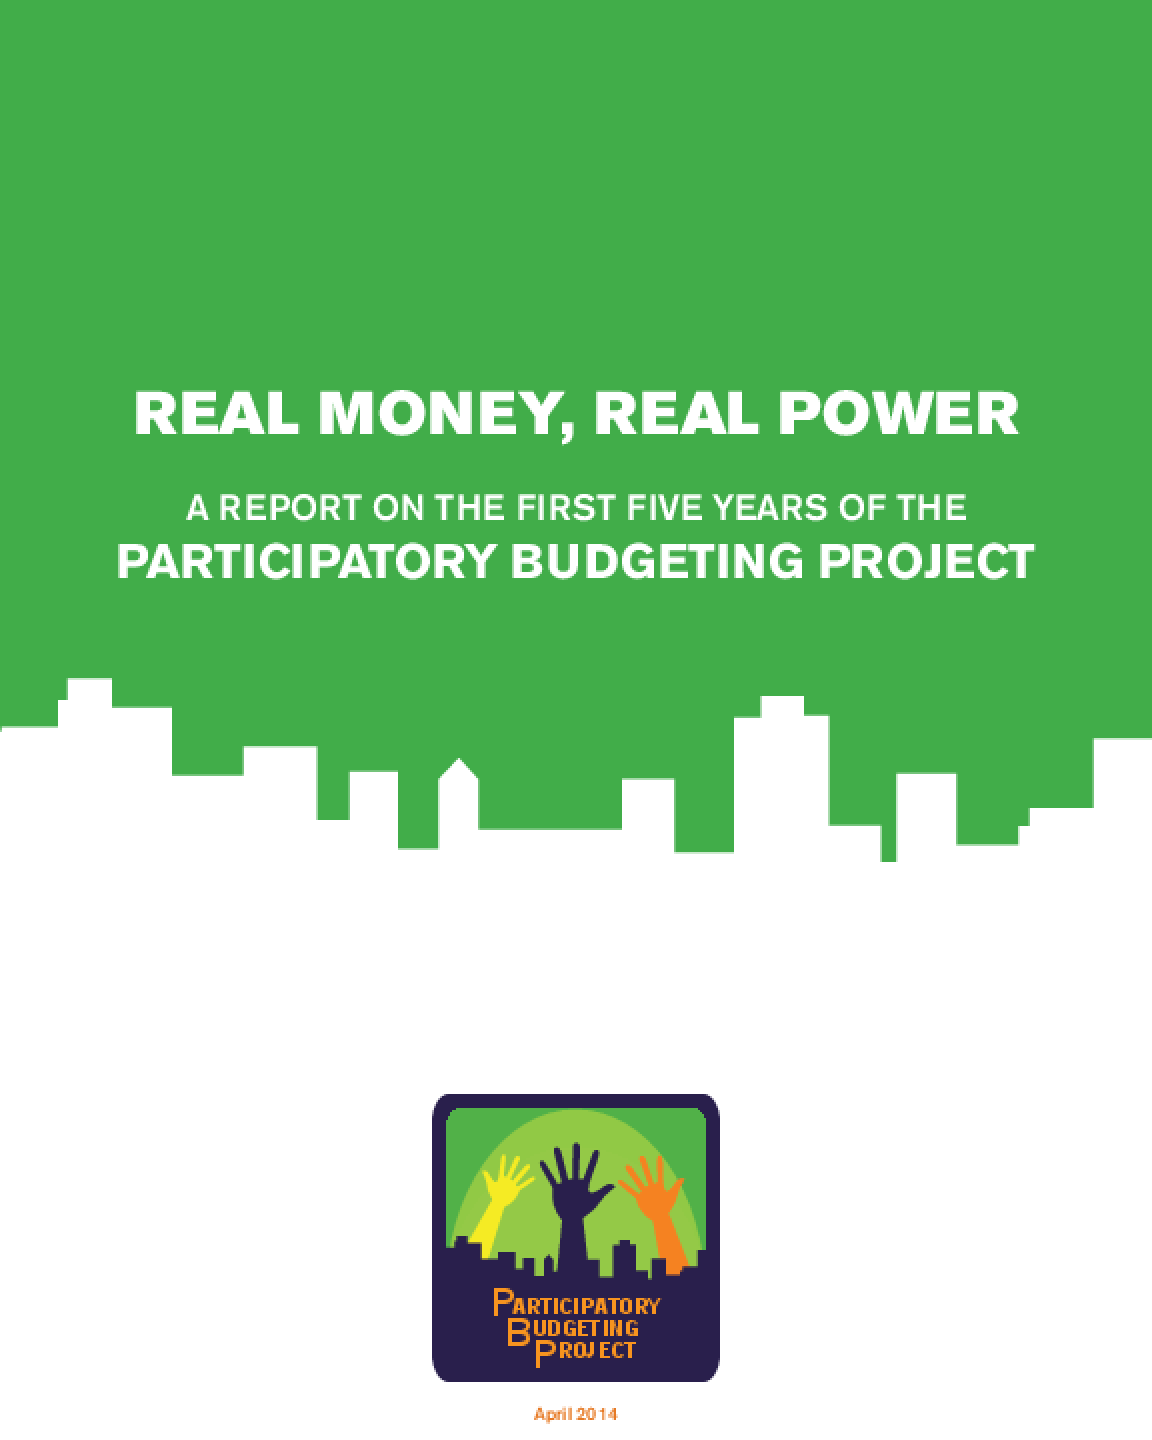 Real Money, Real Power: A Report on the First Five Years of the Participatory Budgeting Project